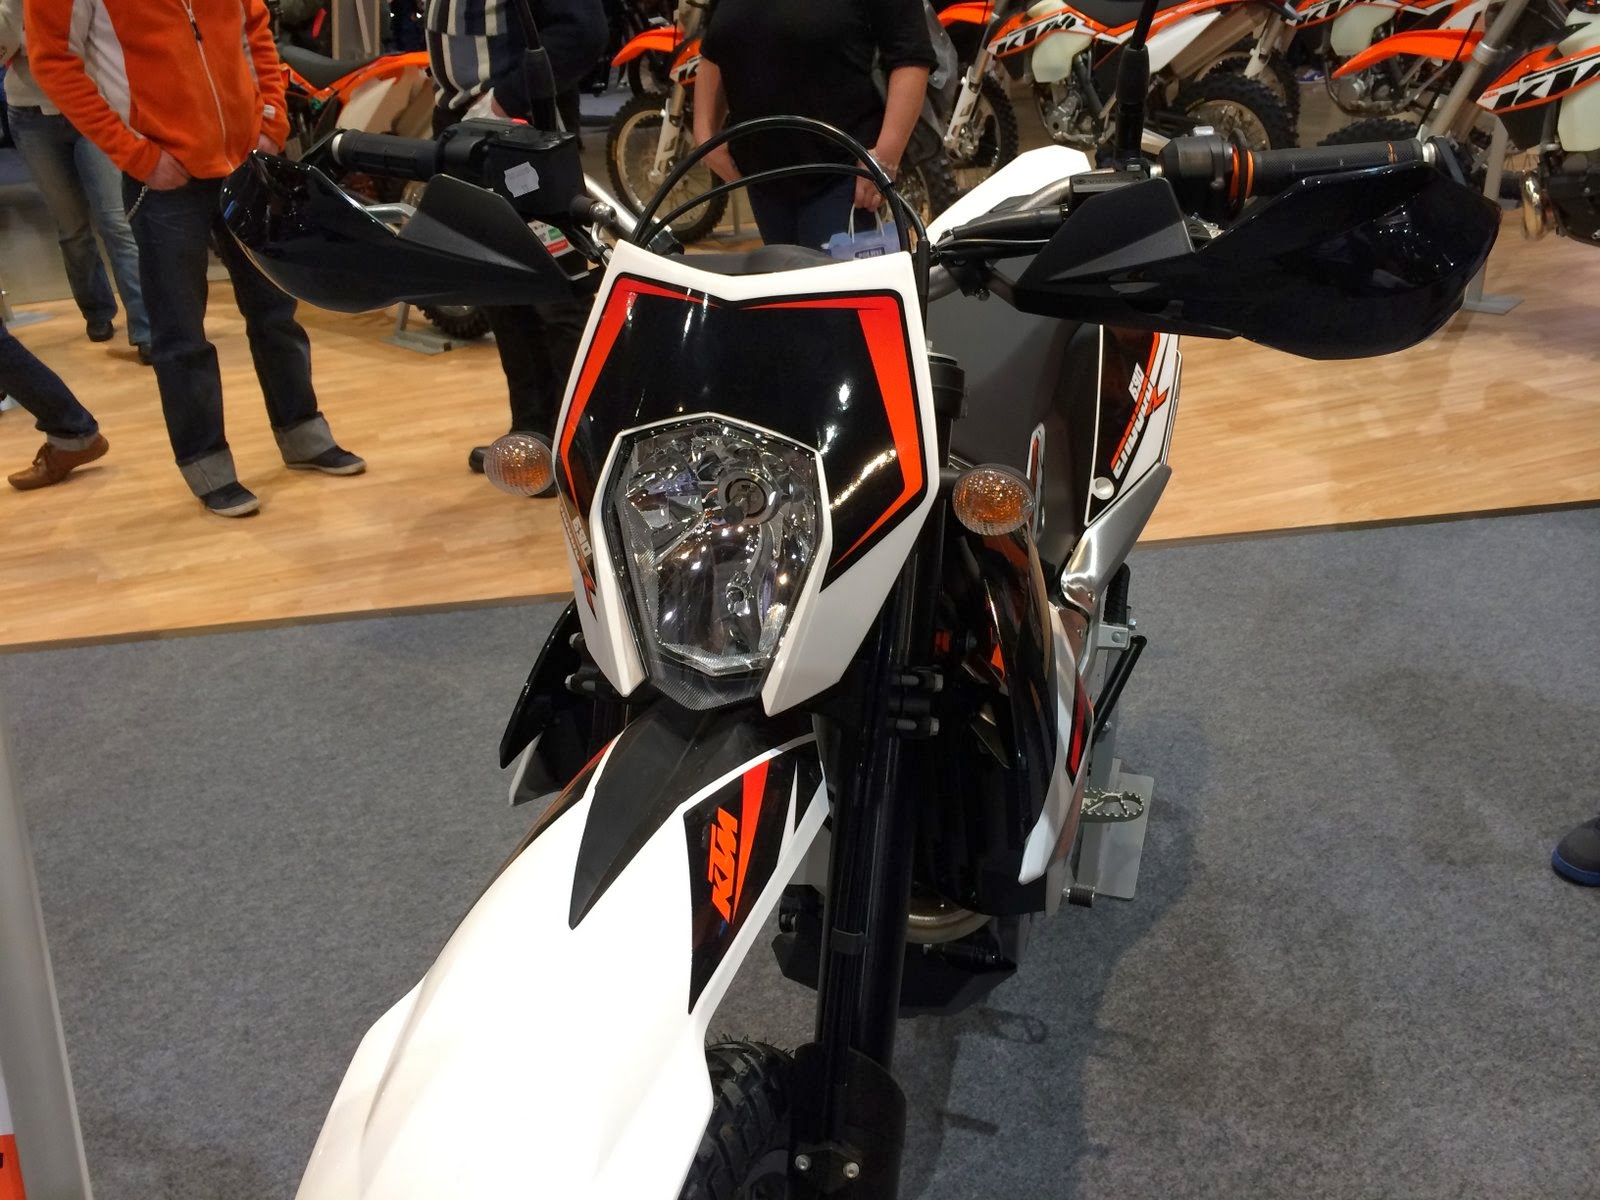 2014 KTM 690 Eduroro R headlight